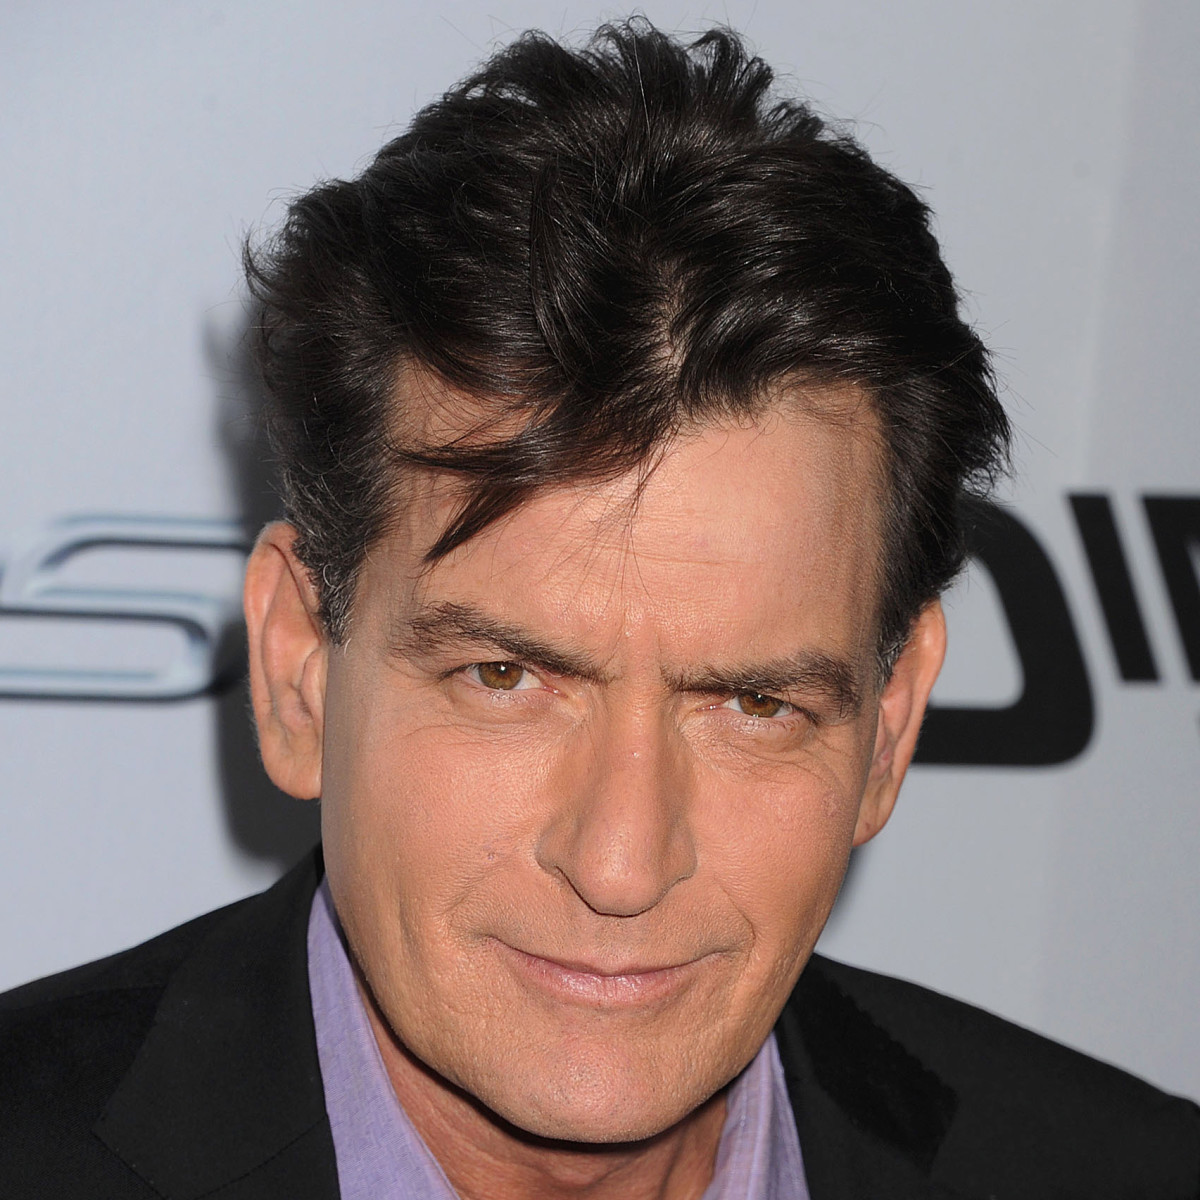 Charlie Sheen says Two and a Half Men return 'makes sense ... |Charlie Sheen 2014